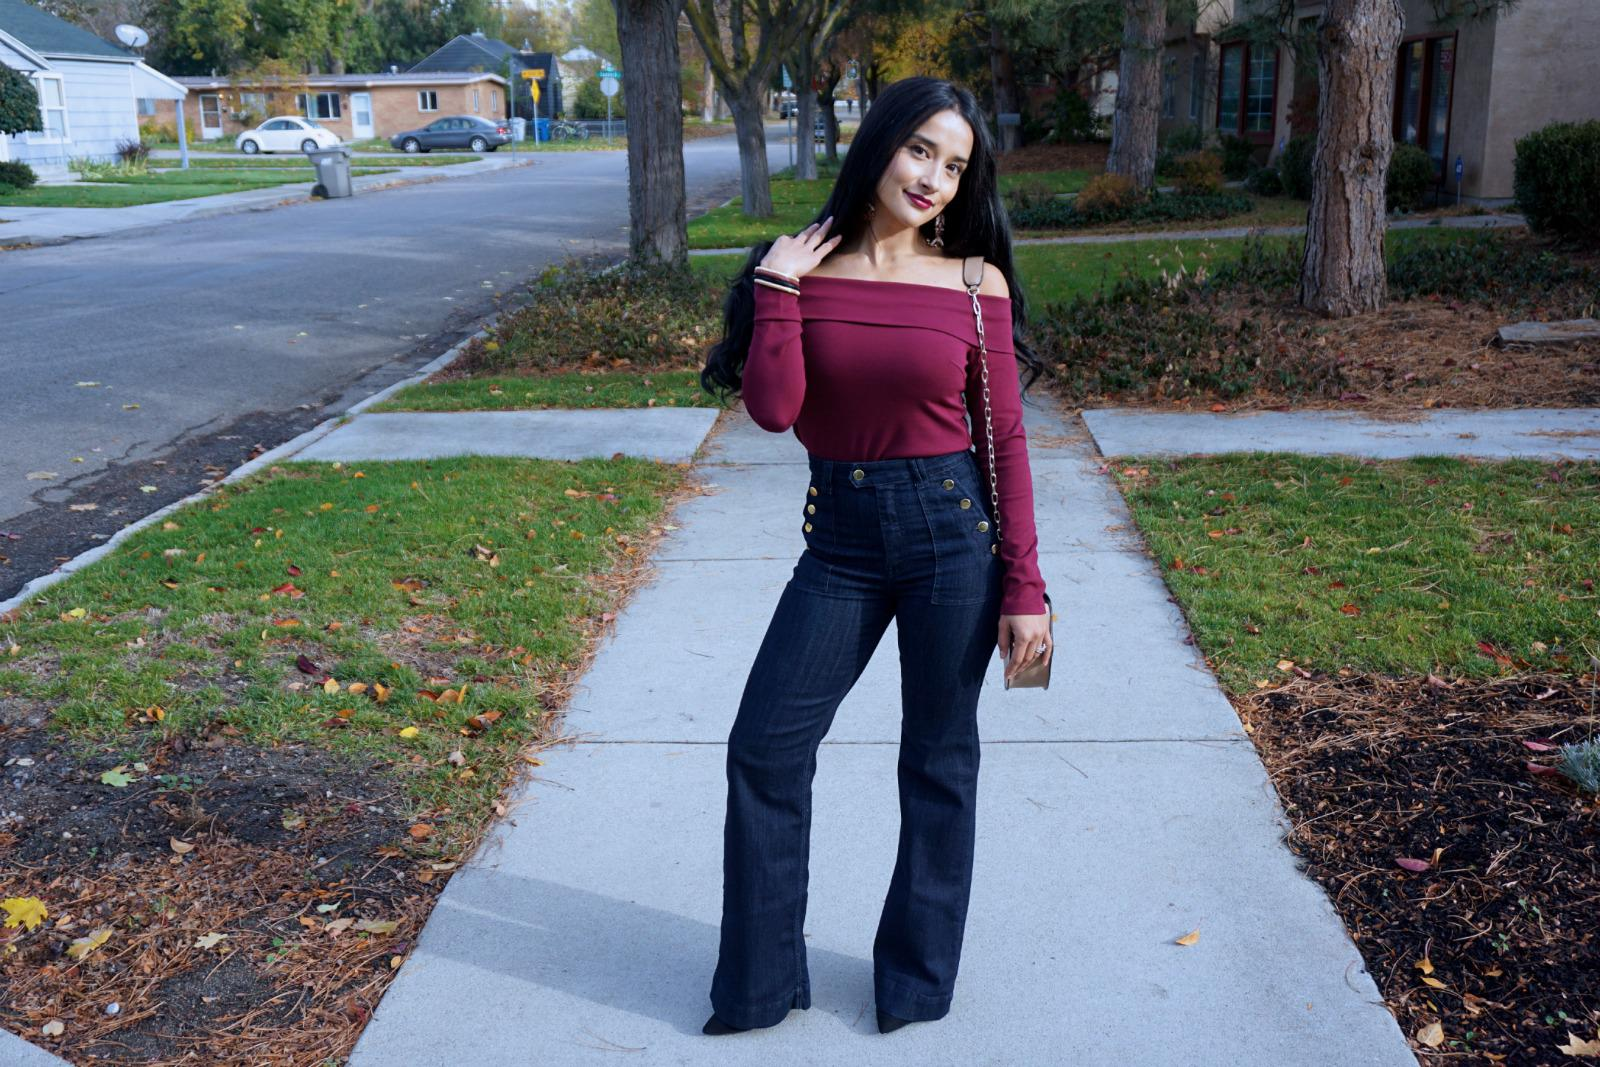 Posing in Flare Jeans